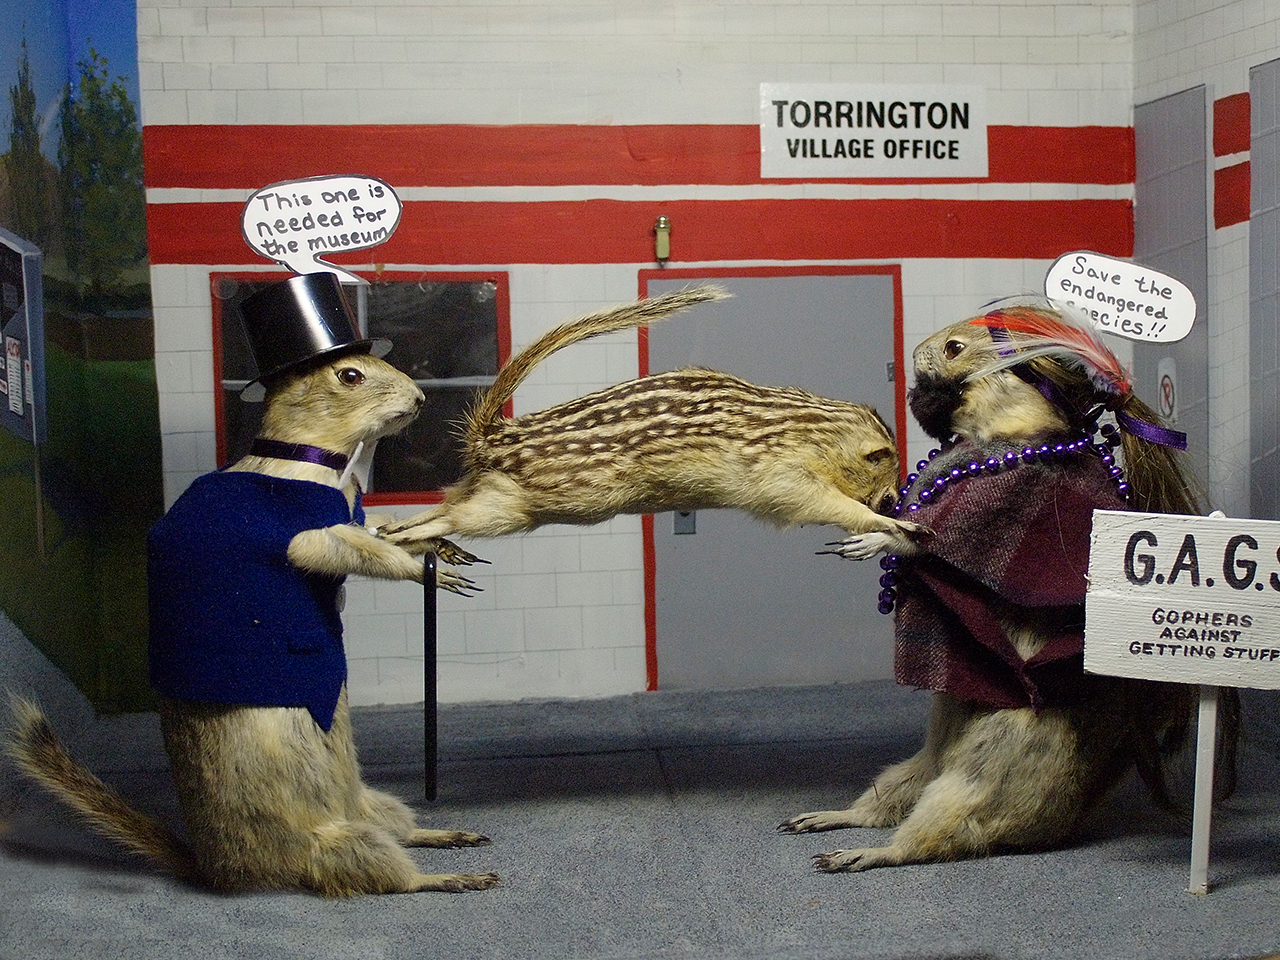 3 gophers in activist diorama scene